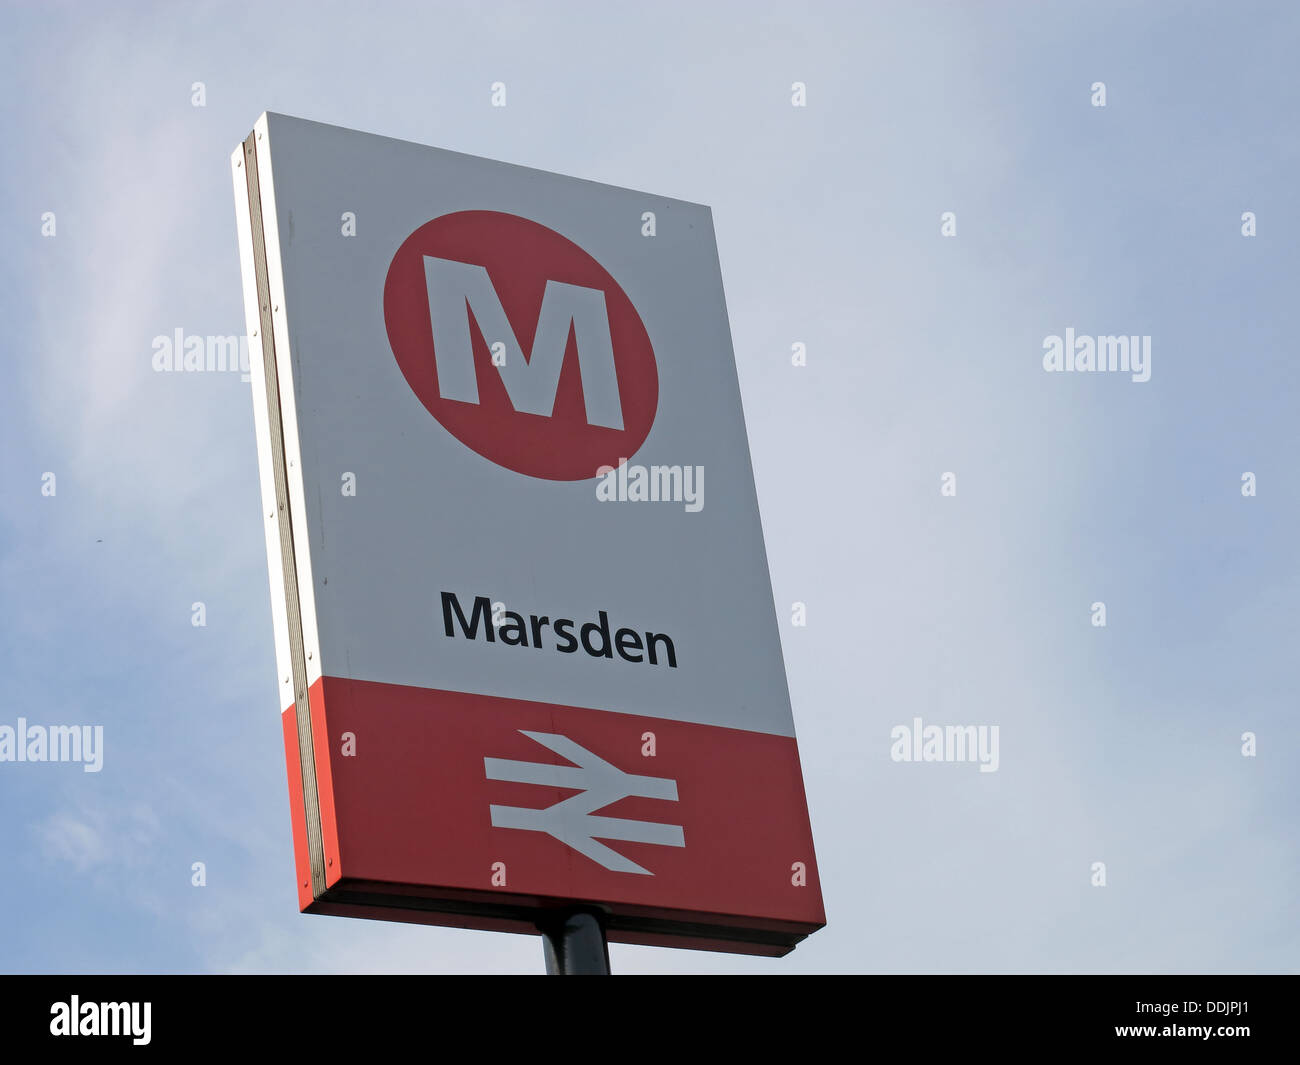 line,from,Stalybridge,to,Huddersfield,red,white,rail,road,ale,trail,aletrail,aletrain,stop,summer,drinker,drinkers,Metro,Yorks,Yorkshire,large,village,within,the,Metropolitan,Borough,of,Kirklees,district,river,Colne,Wessenden,Brook,west,Pennines,into,Greater,Manchester,station,transport,BR,gotonysmith,Butterley,Reservoir,with,its,distinctive,spillway,Mill,stop,British,Rail,BritishRail,Riverhead,brewery,tap,pub,bar,alehouse,micro,transpennine,transpenine,Buy Pictures of,Buy Images Of